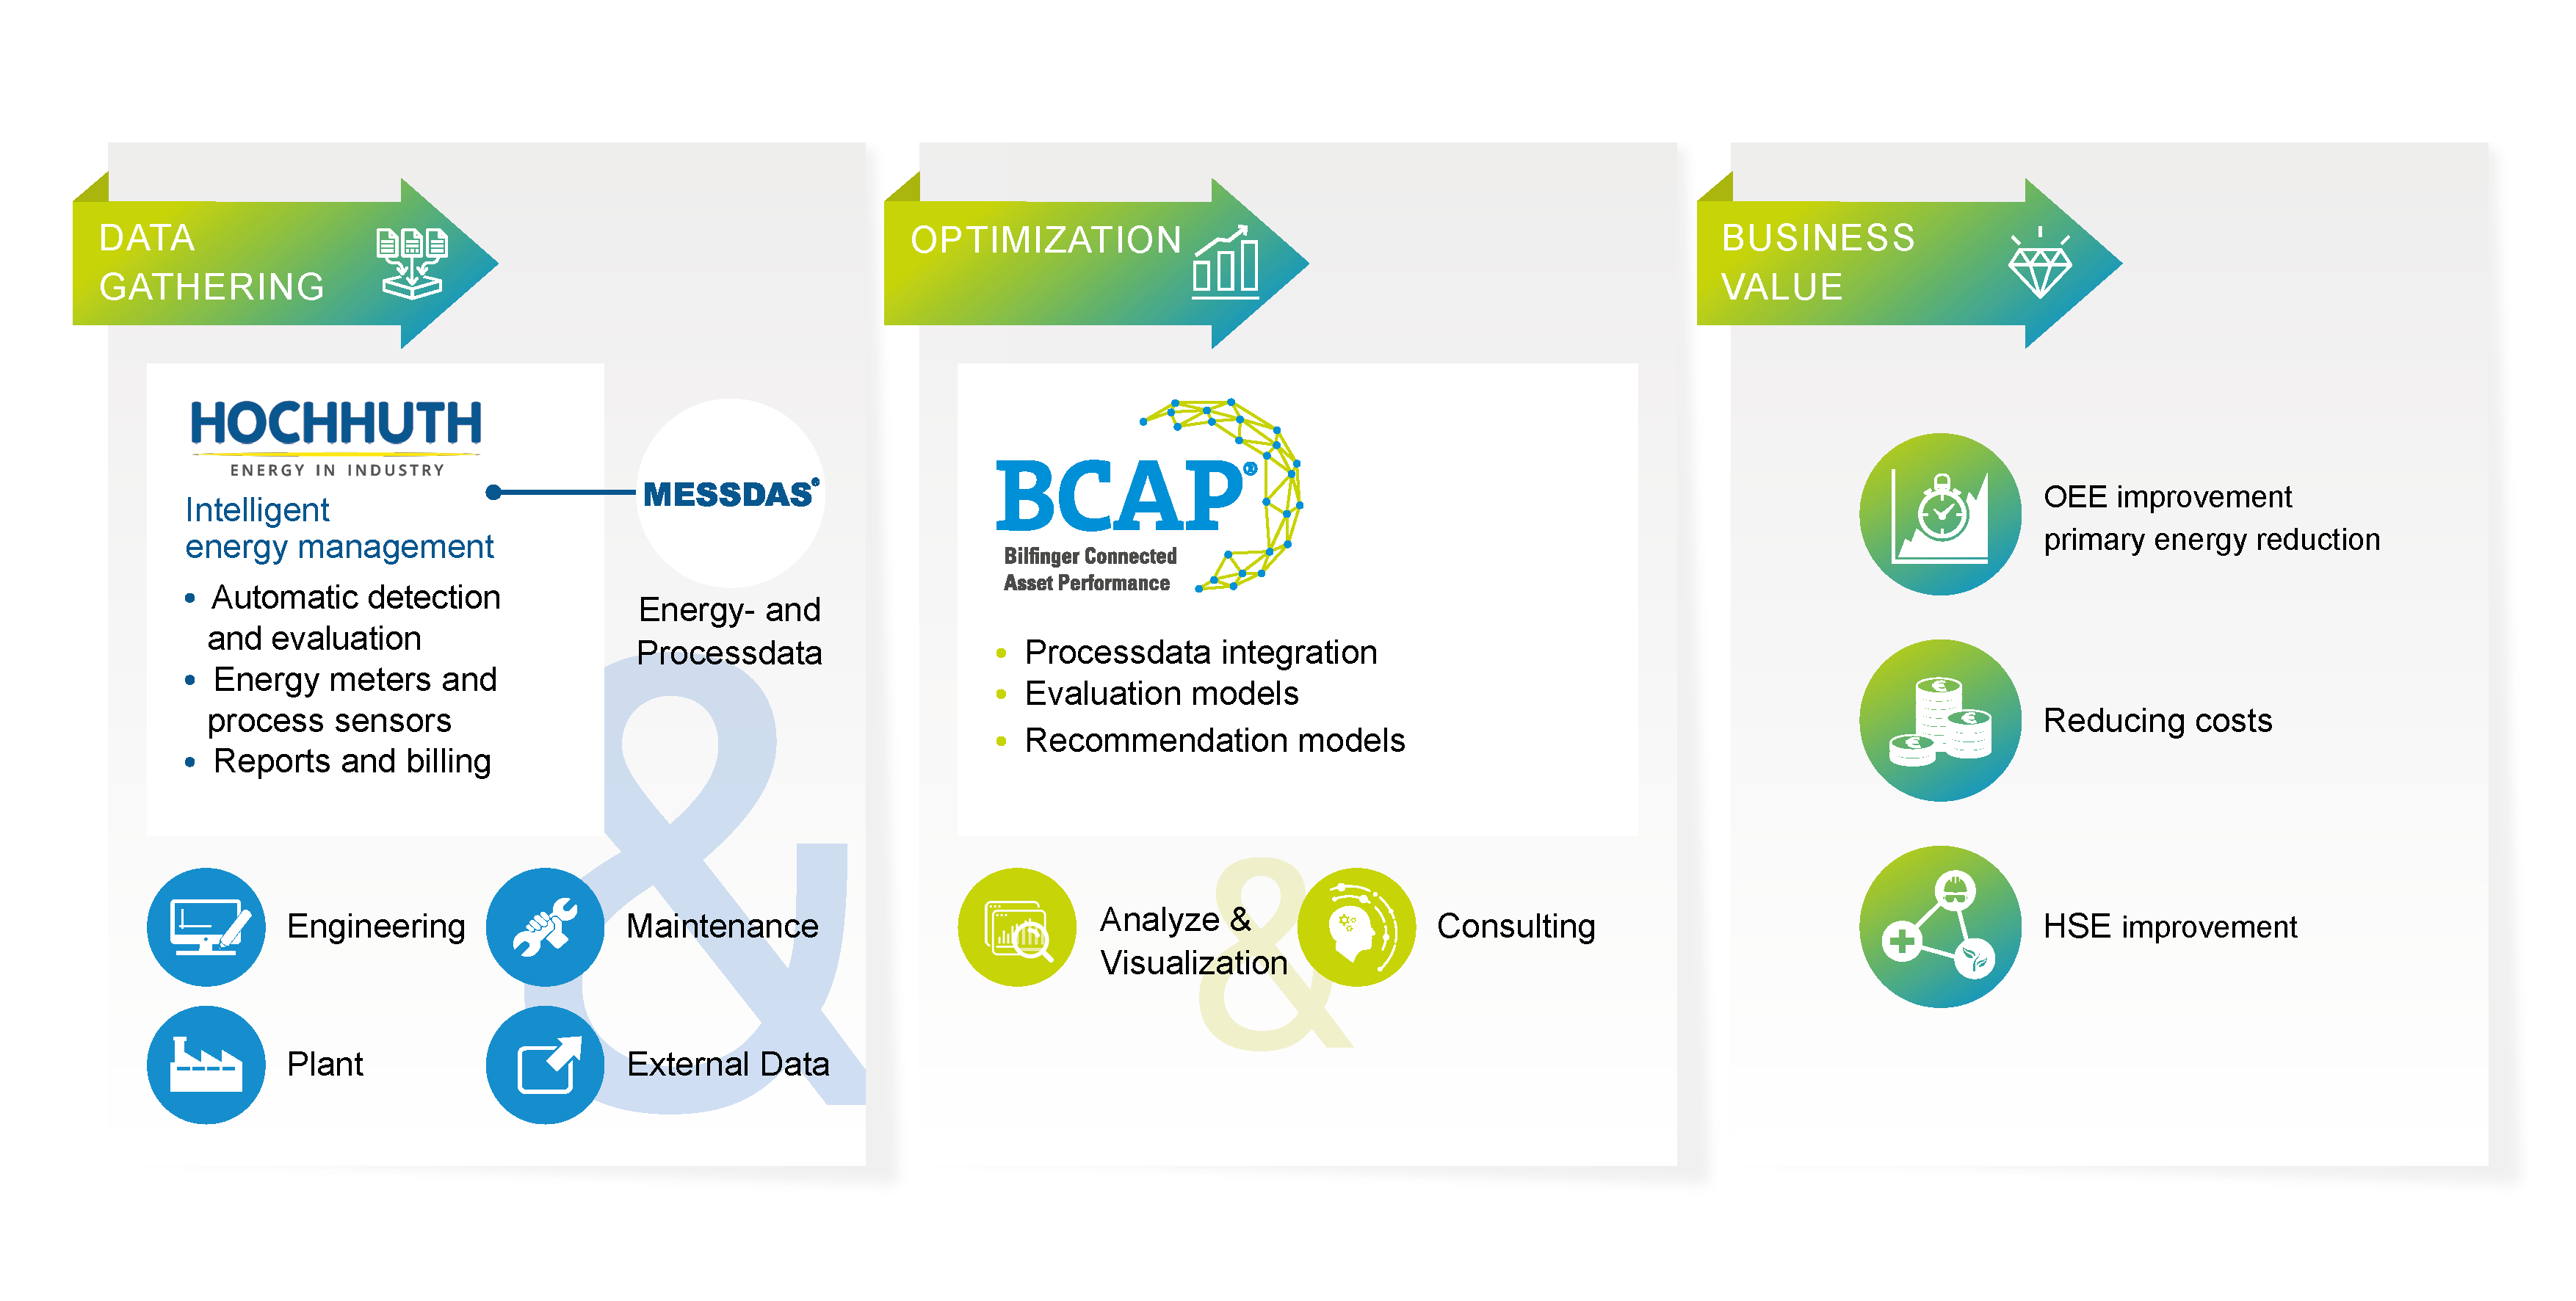 Bilfinger Digital Next combines intelligent energy management (MESSDAS) with further analysis and modeling including consulting based on BCAP